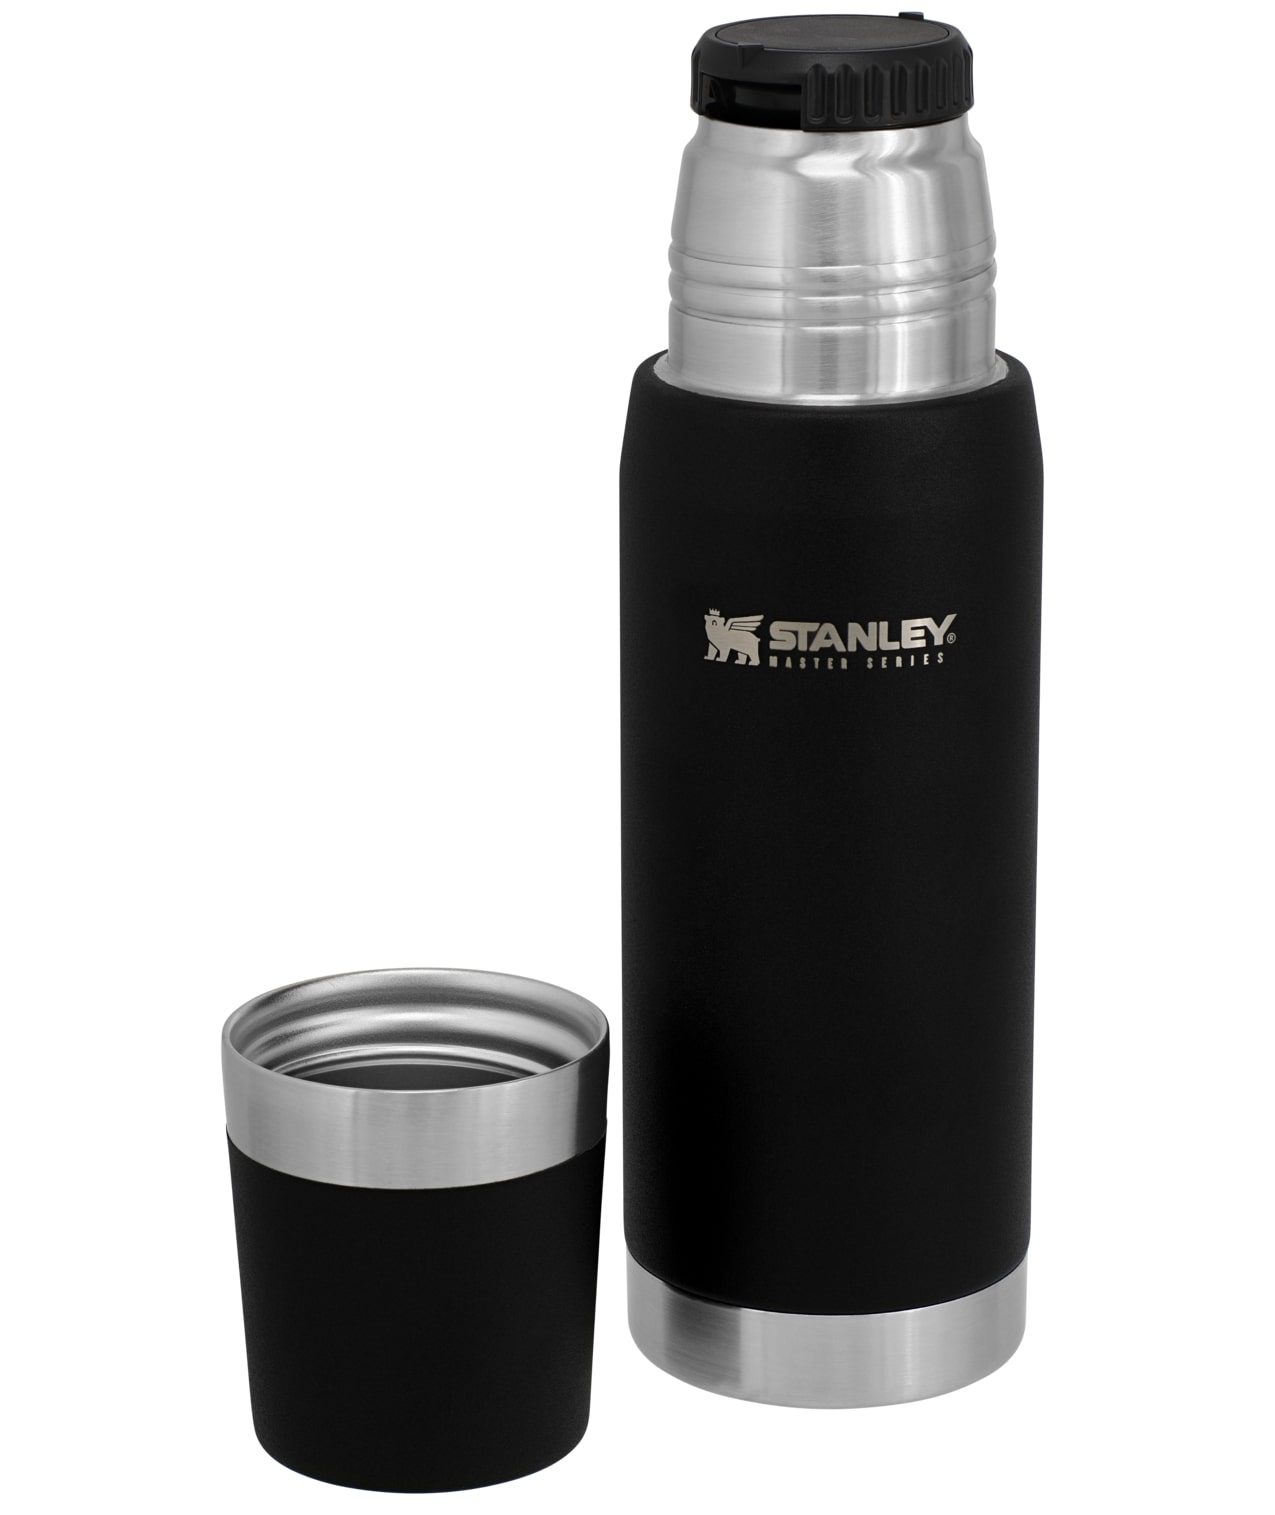 Bình giữ nhiệt Stanley Master Unbreakable Thermal Bottle 25oz | 0.75L – Black